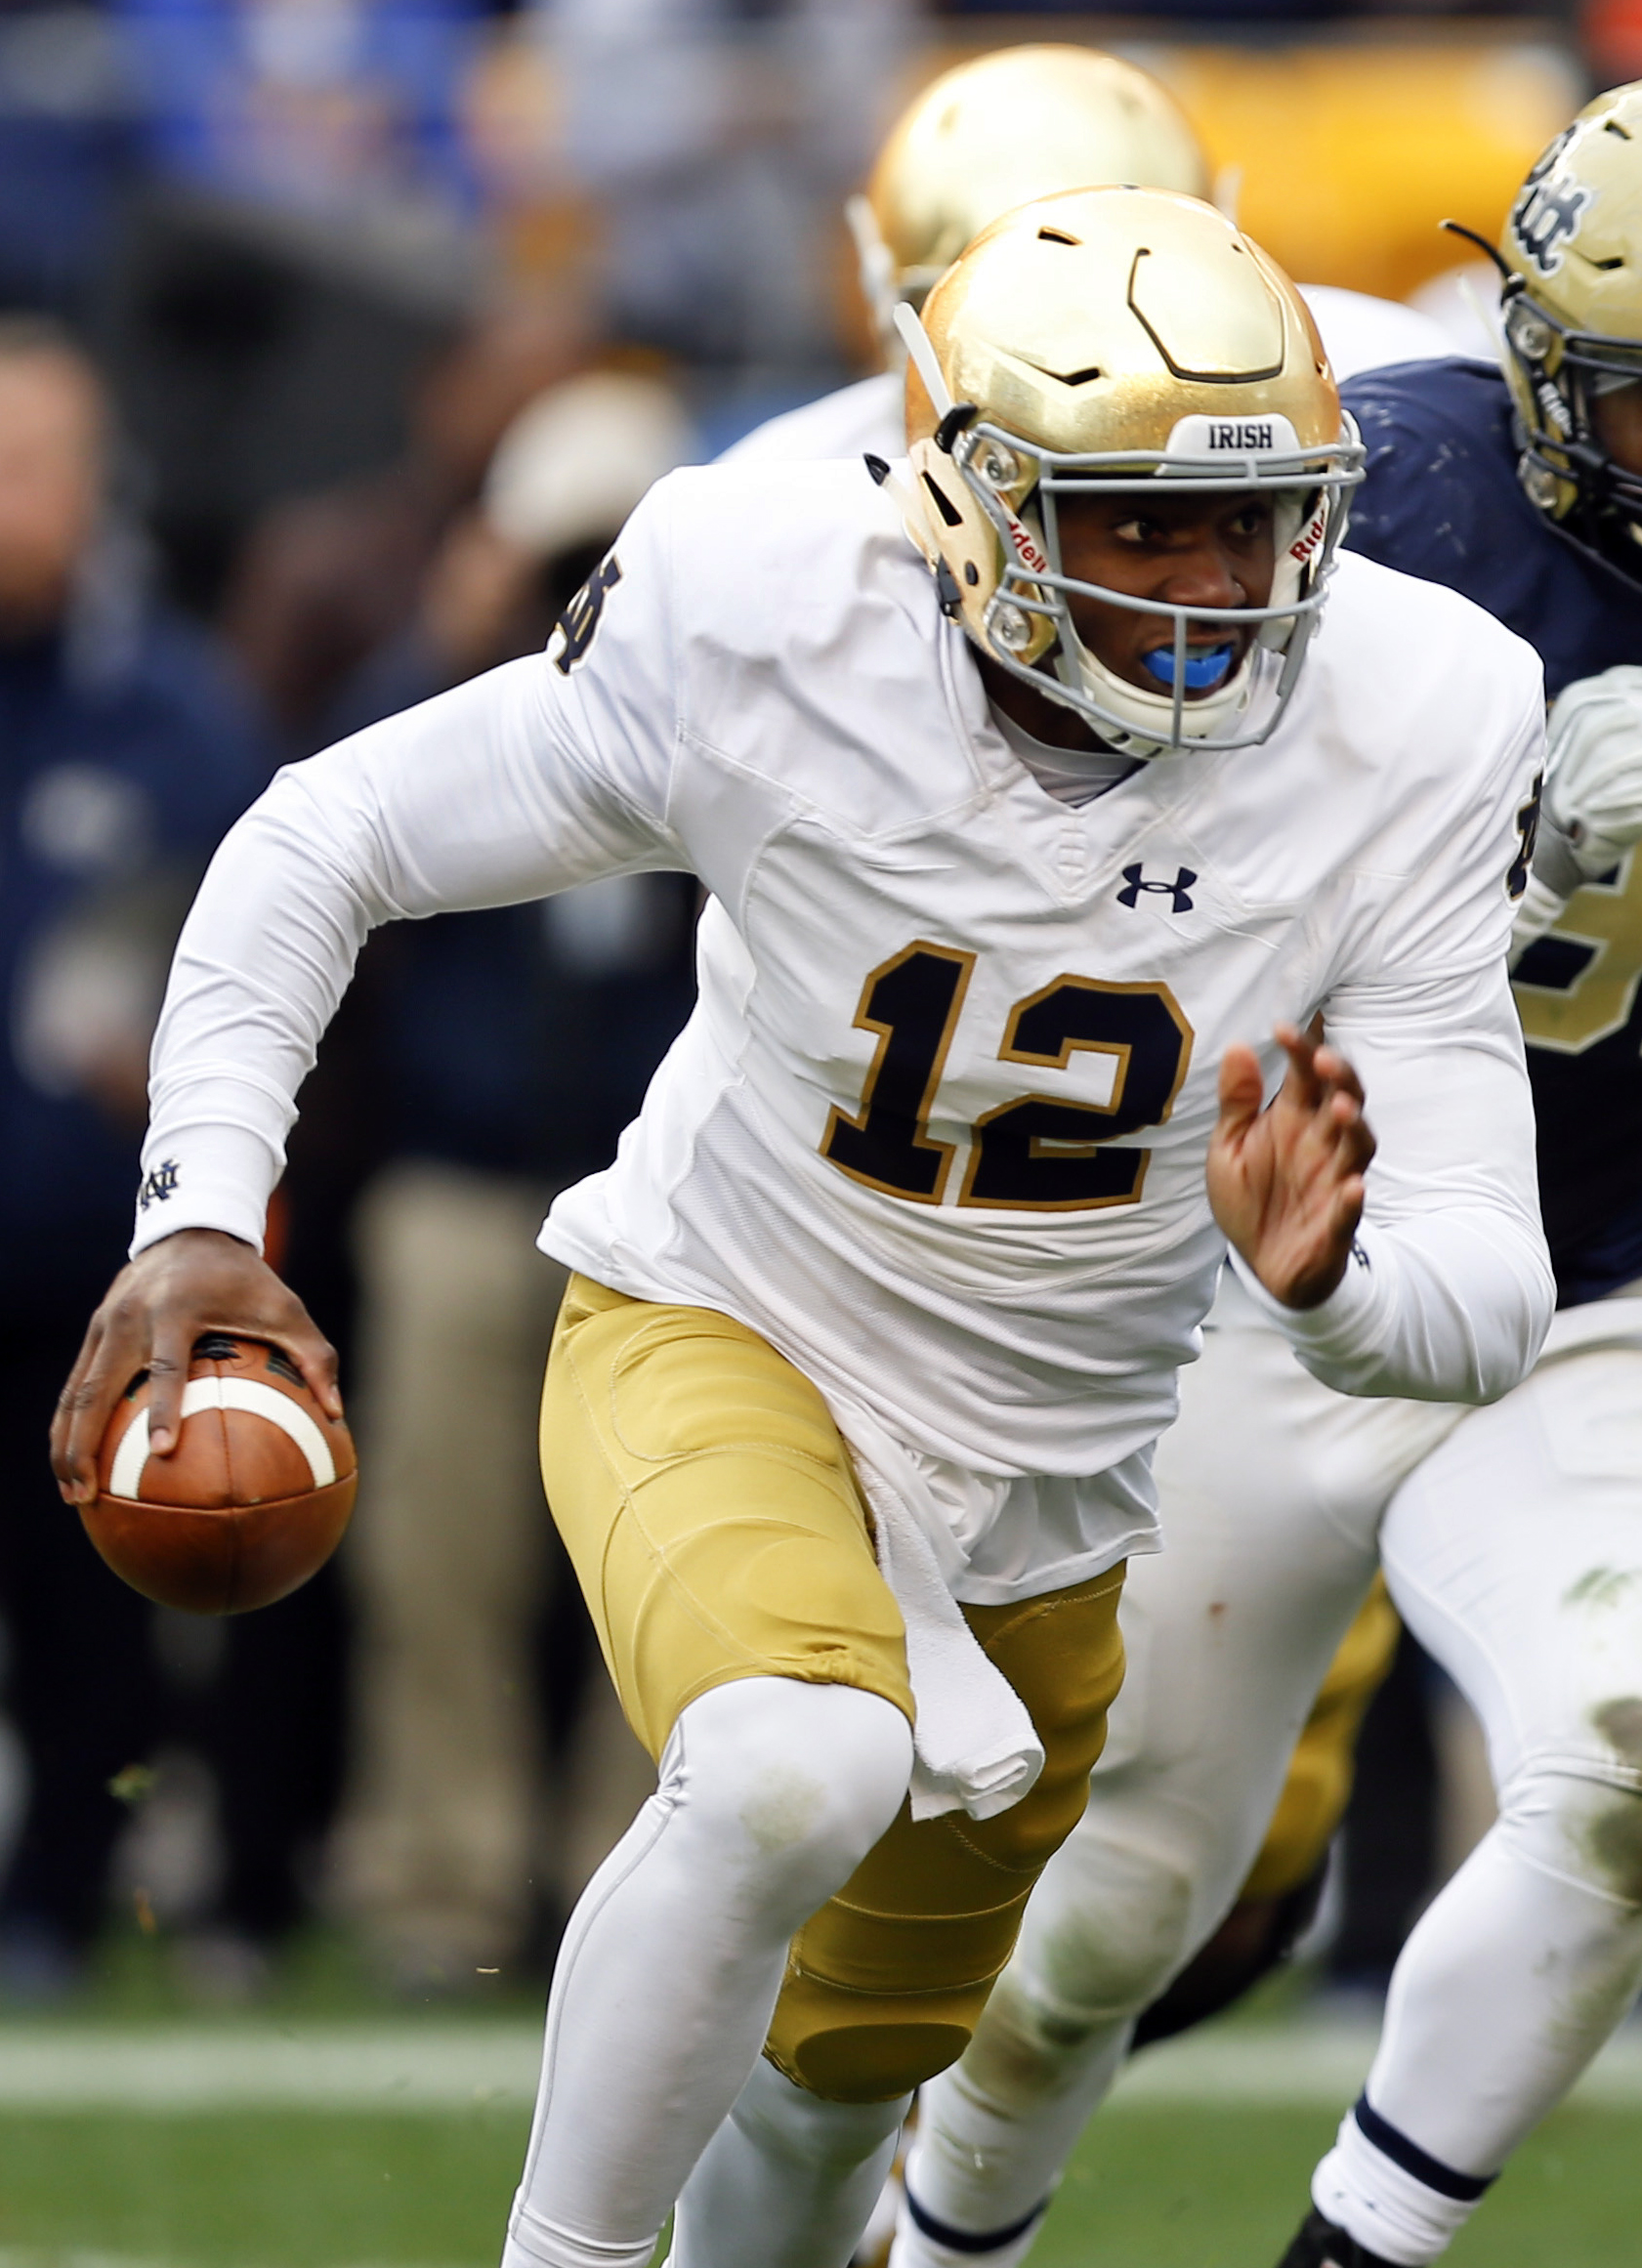 FILE - In this Nov. 7, 2015, file photo, Notre Dame quarterback Brandon Wimbush rushes during an NCAA football game against Pittsburgh in Pittsburgh. Wimbush knows he faces a challenge in trying to beat out  DeShone Kizer and Malik Zaire for the starters